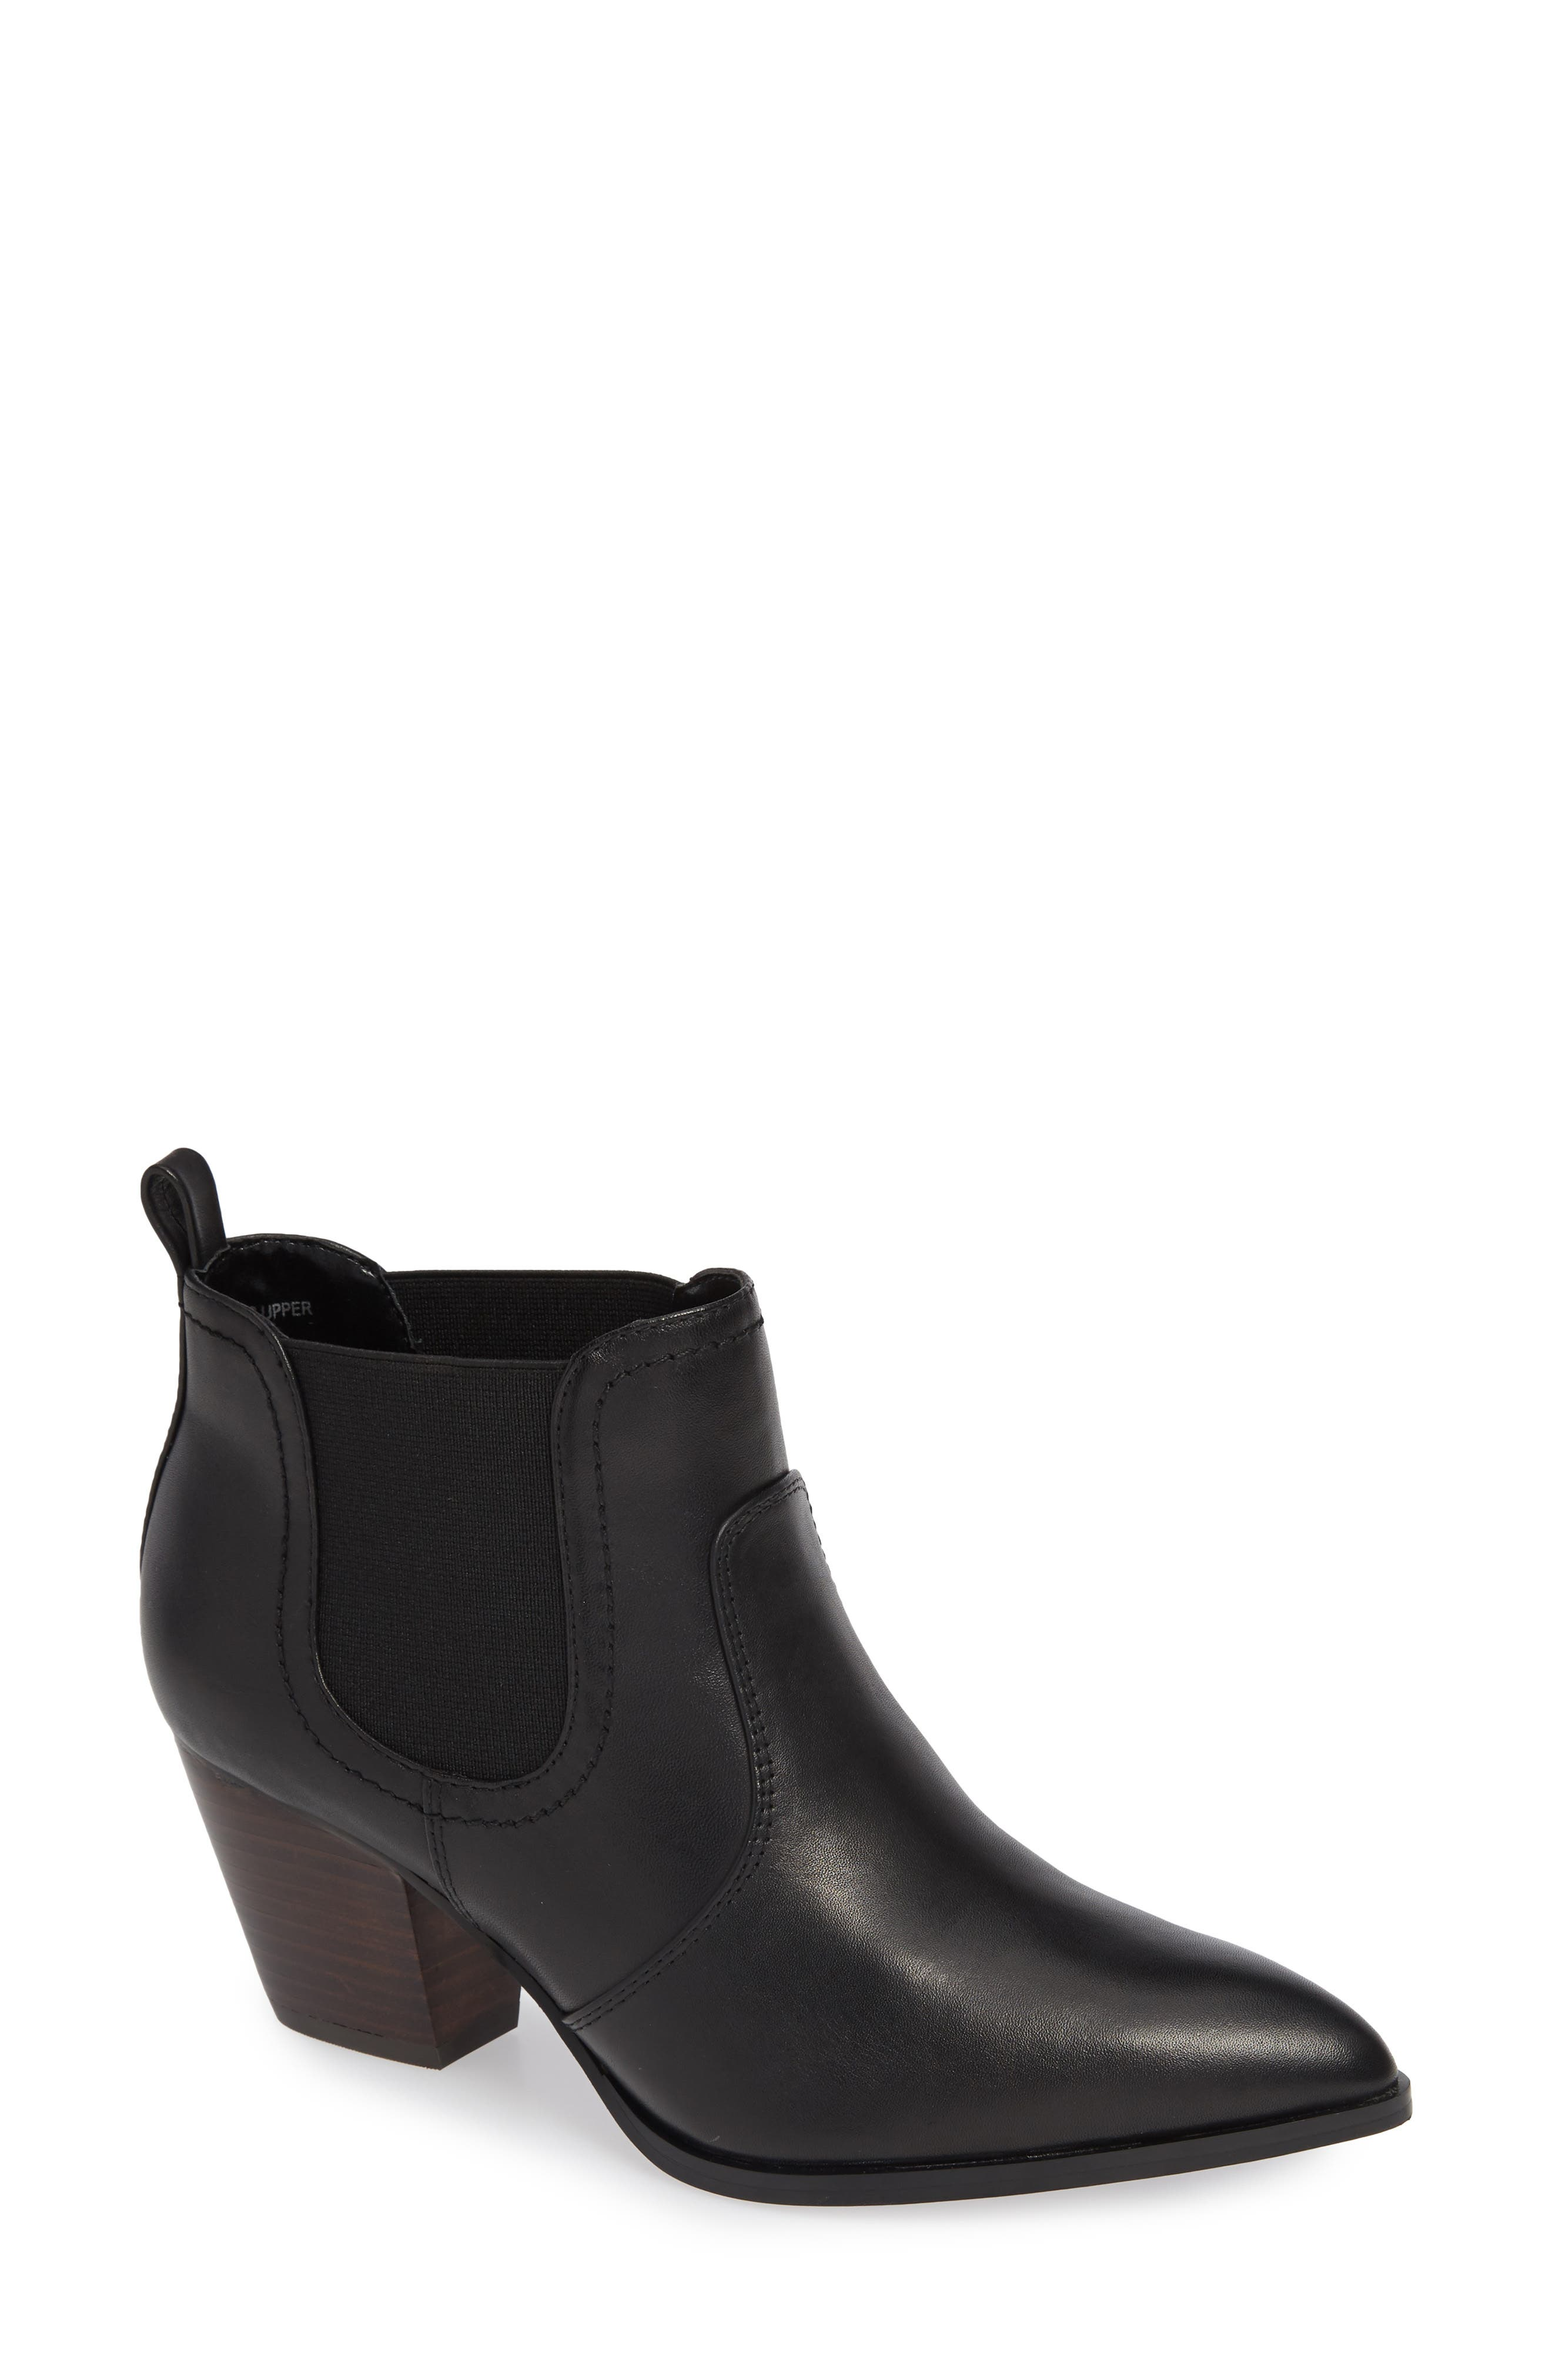 BELLA VITA, Emerson Chelsea Bootie, Main thumbnail 1, color, BLACK LEATHER